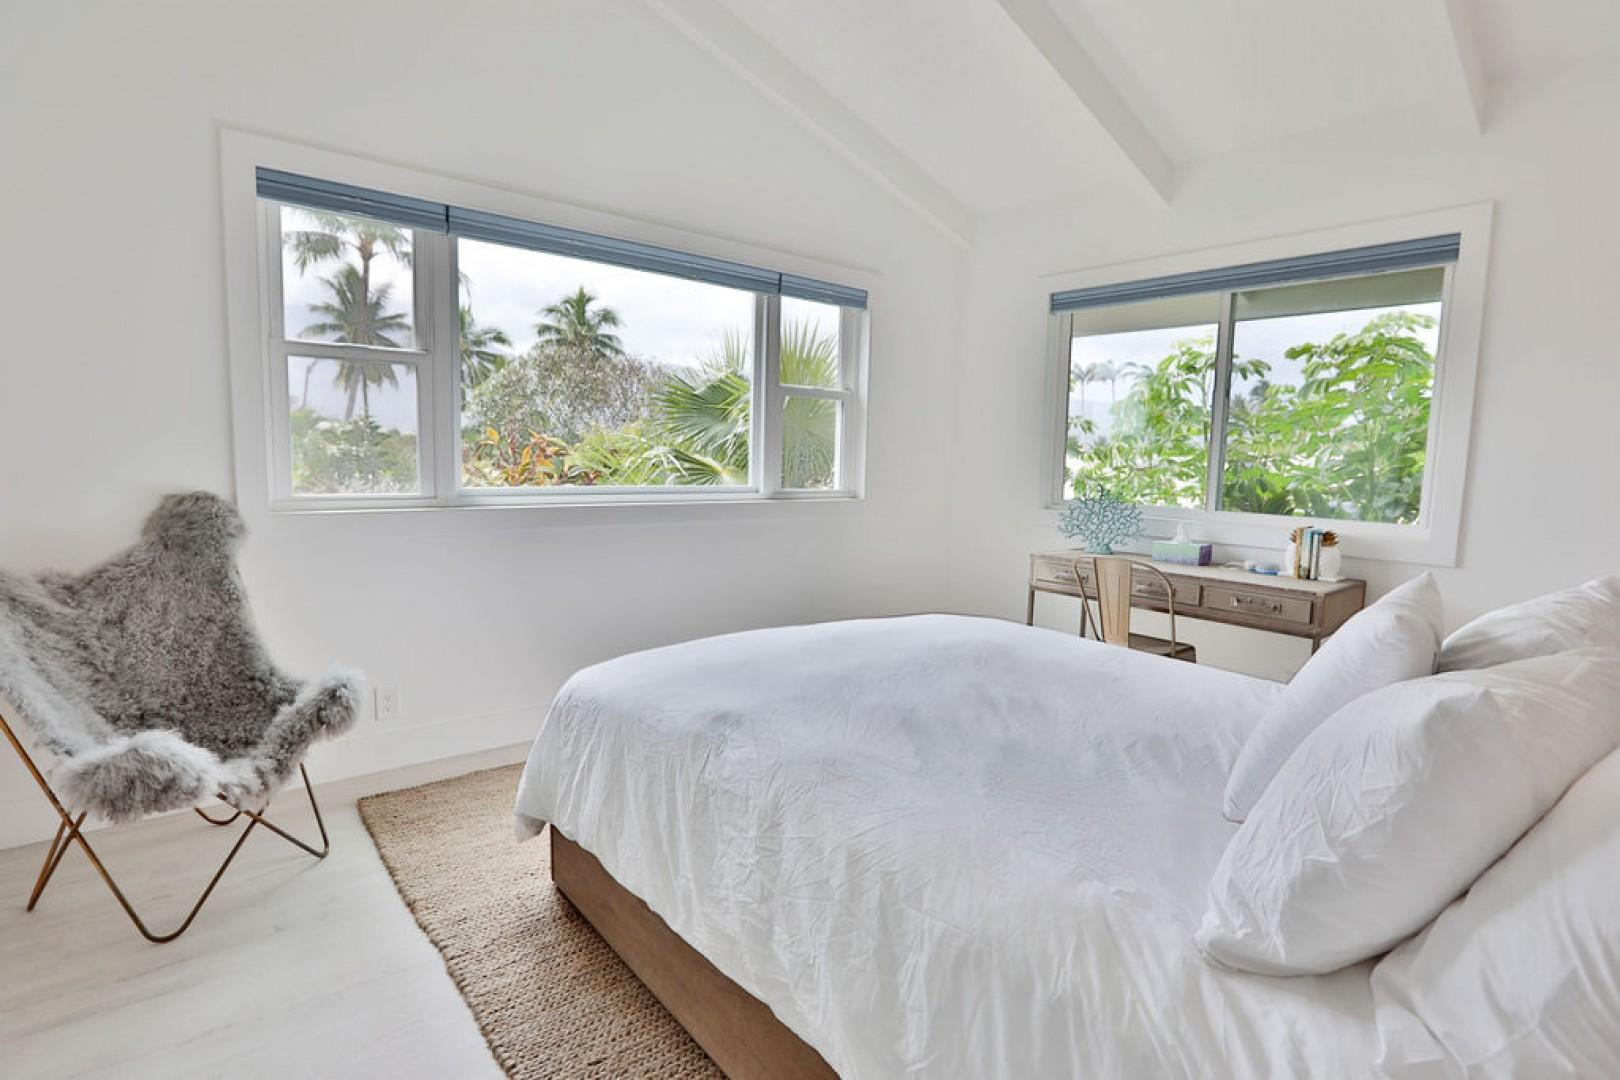 3rd Guest Bedroom with mountain views